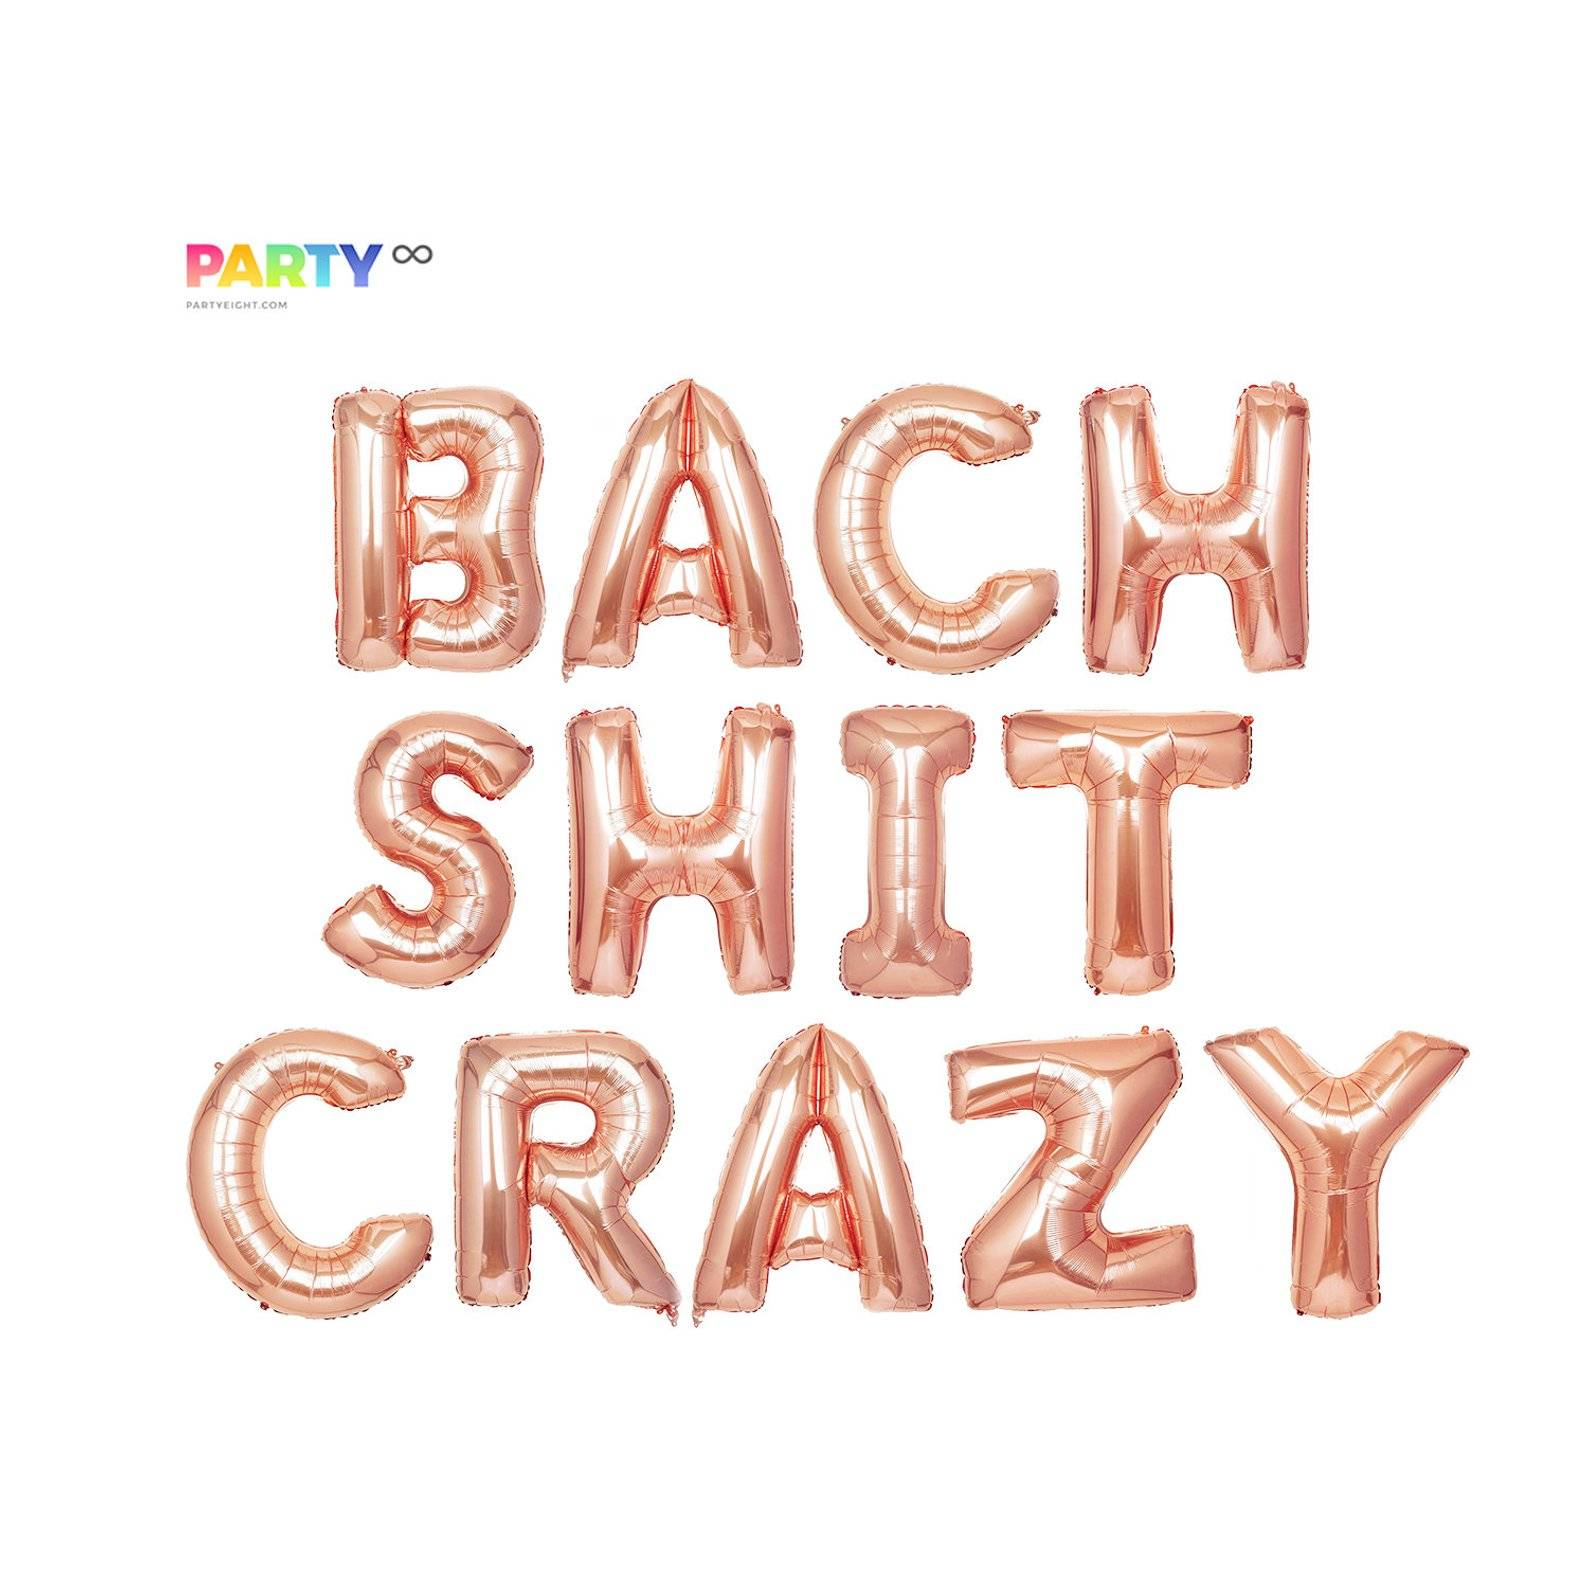 Bach Shit Crazy Bachelorette Party Decor Balloon Banner | Bachelorette Party Decorations | Bachelorette Party Banner/Sign